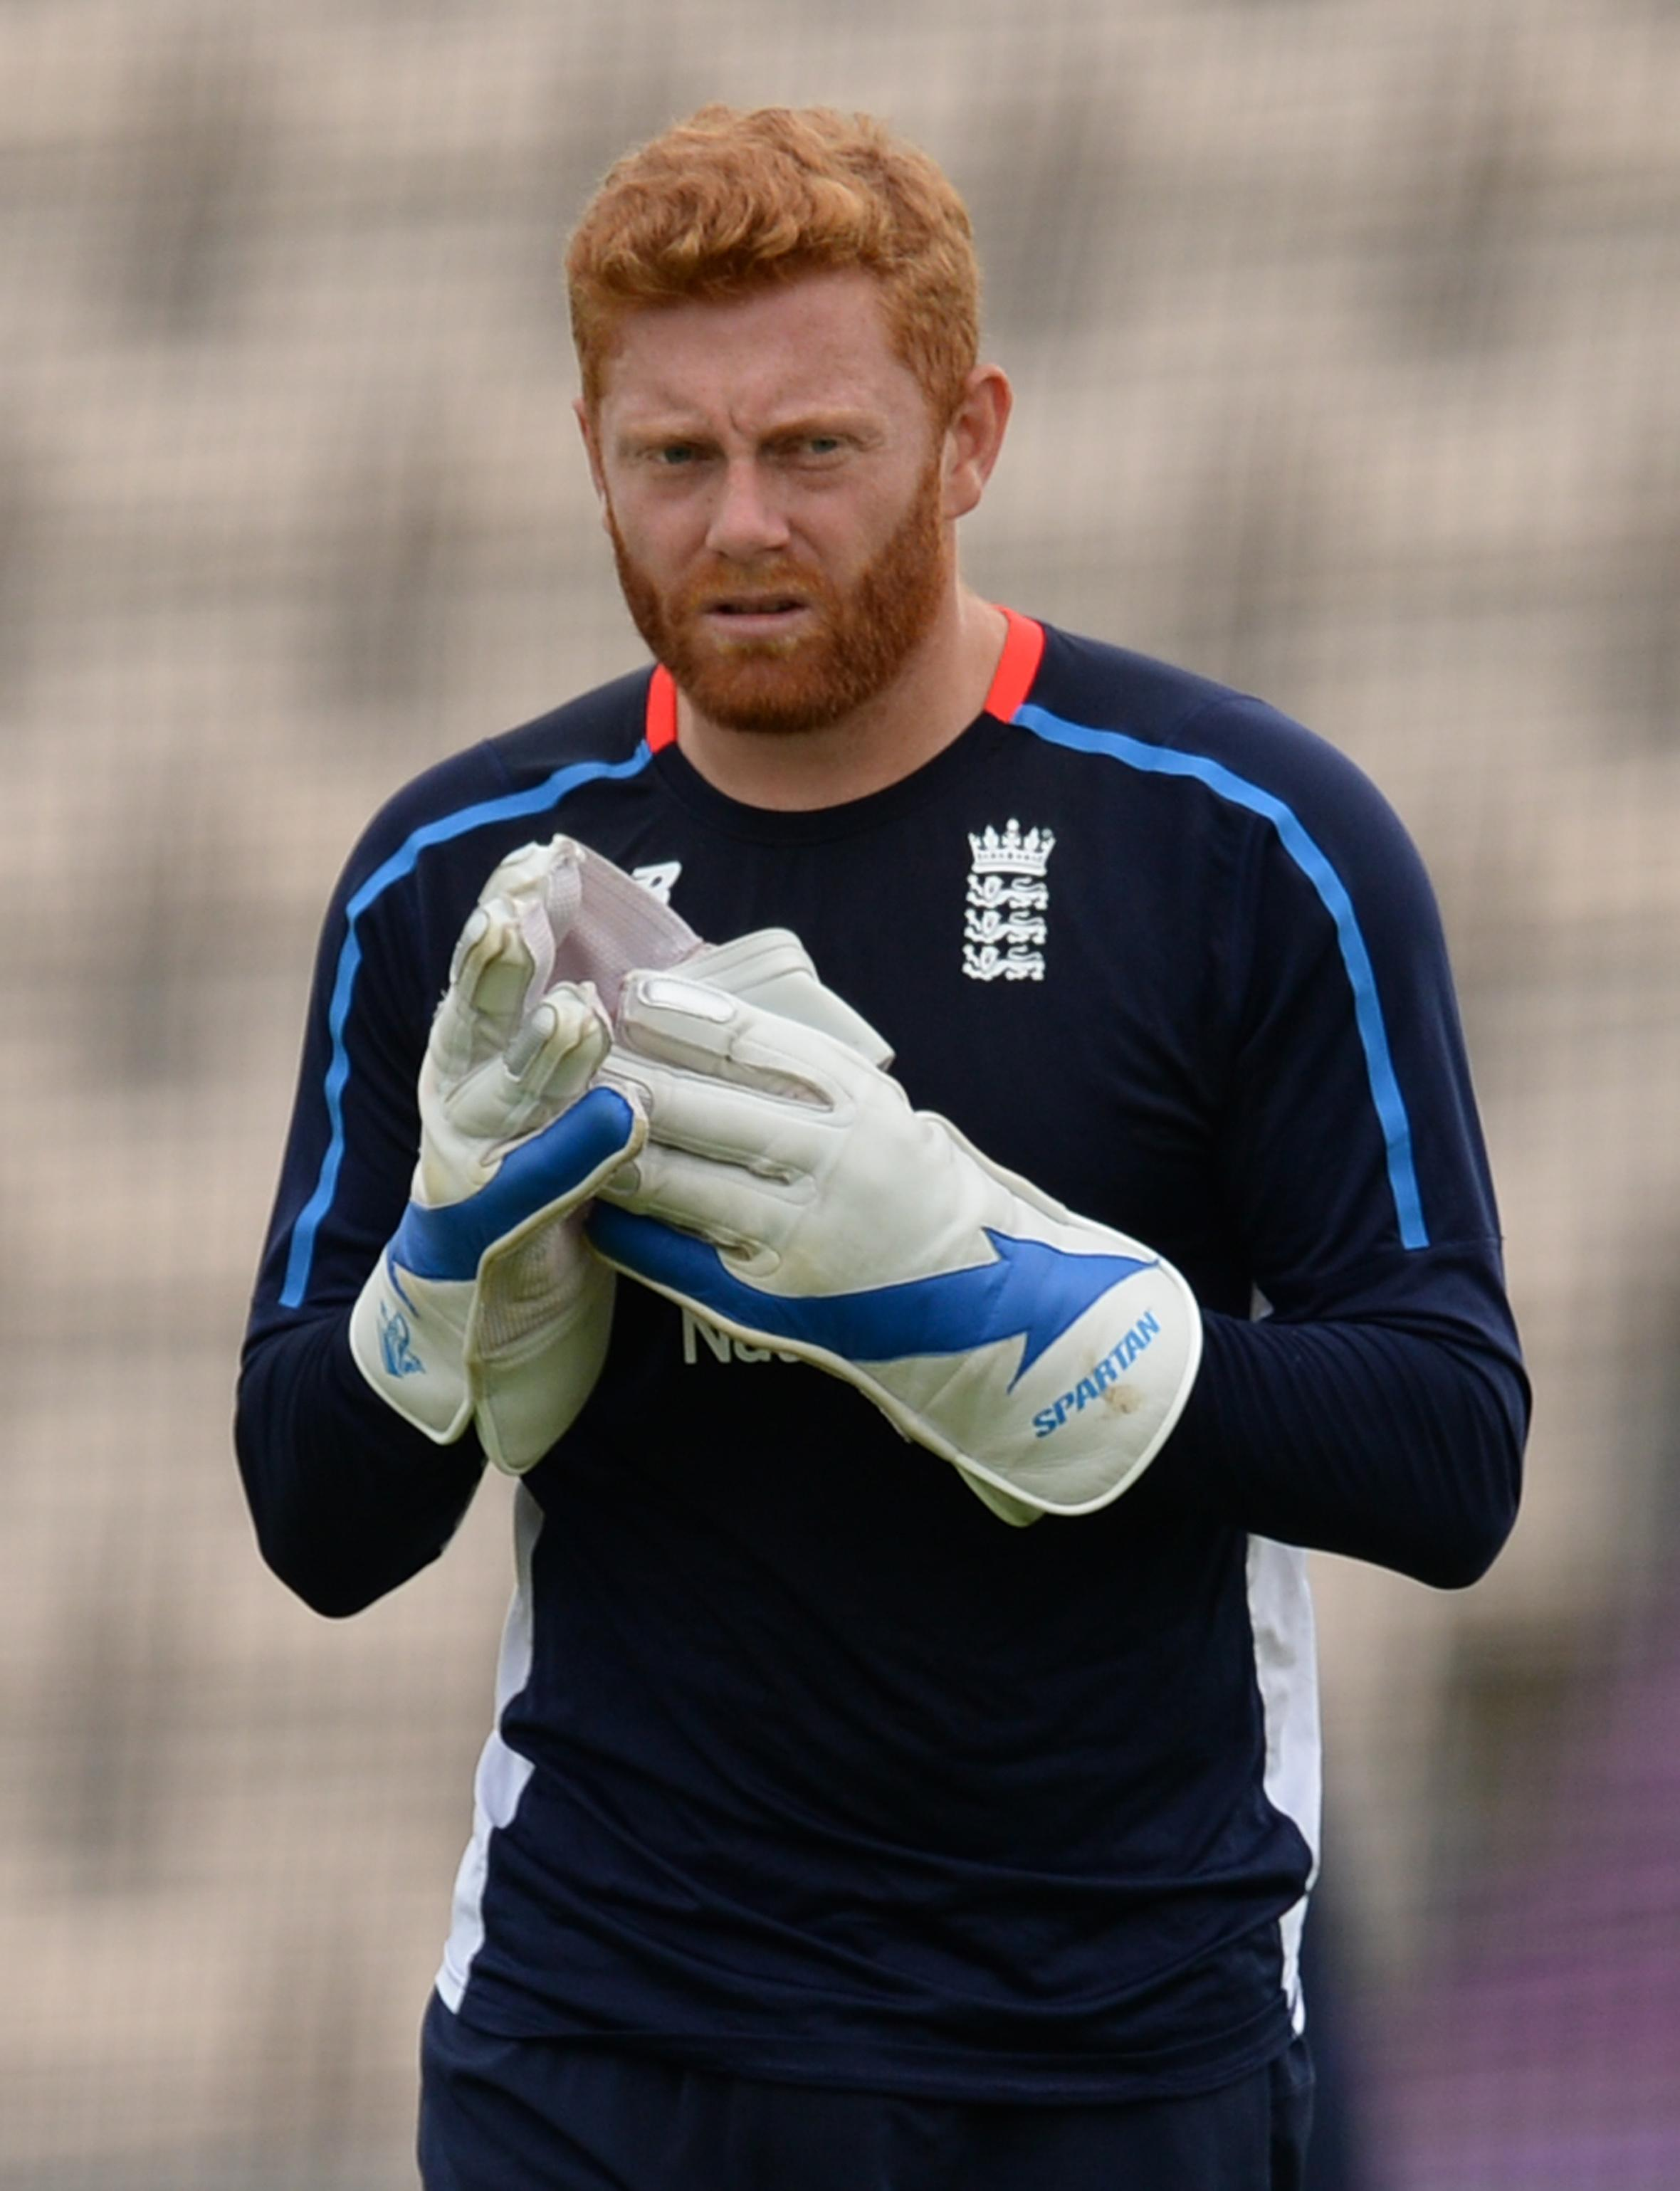 Energetic Bairstow is desperate to hold onto his role as England's wicketkeeper